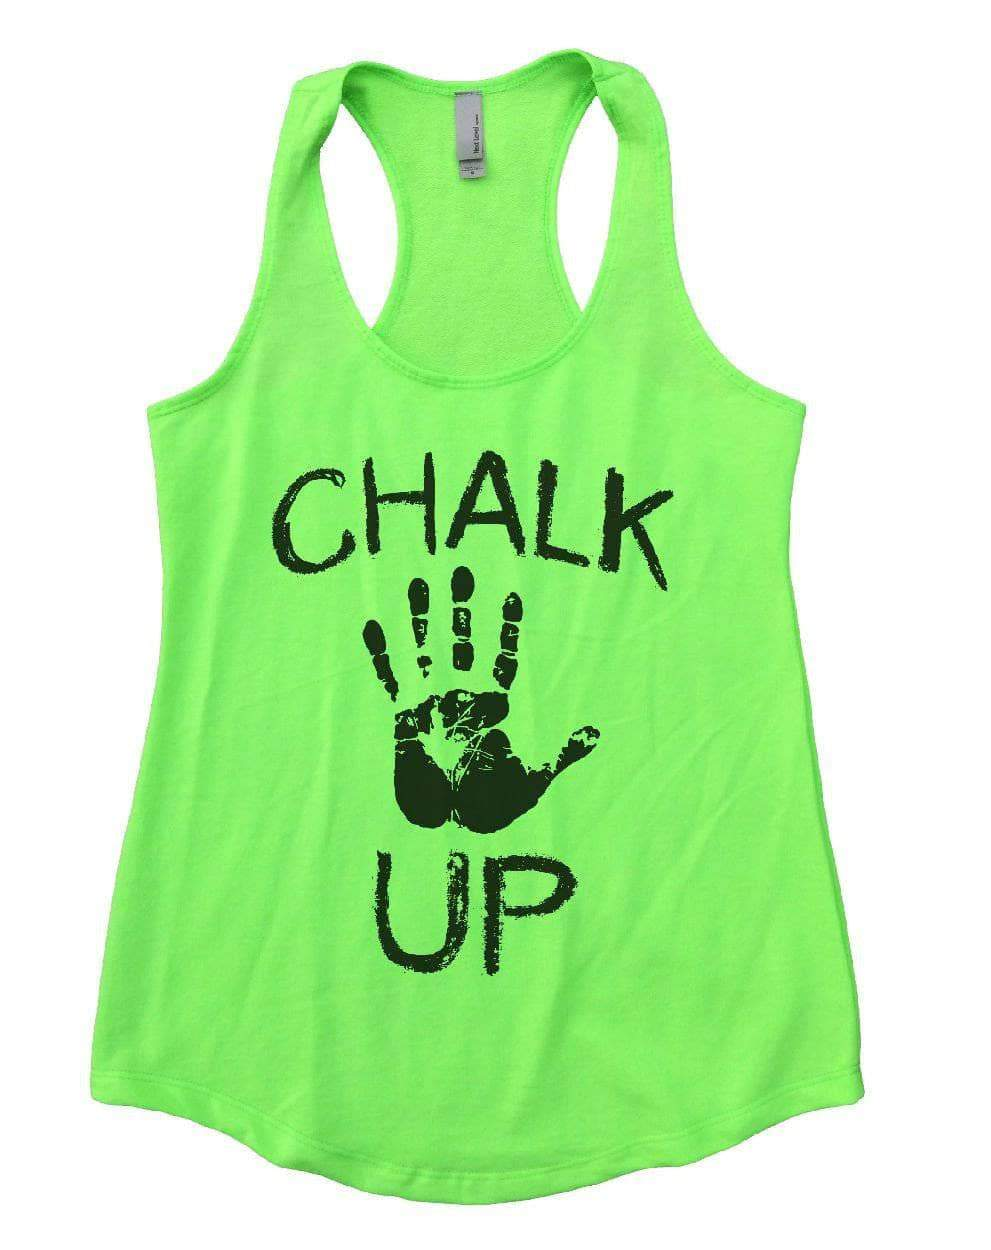 CHALK UP Womens Workout Tank Top Small Womens Tank Tops Neon Green